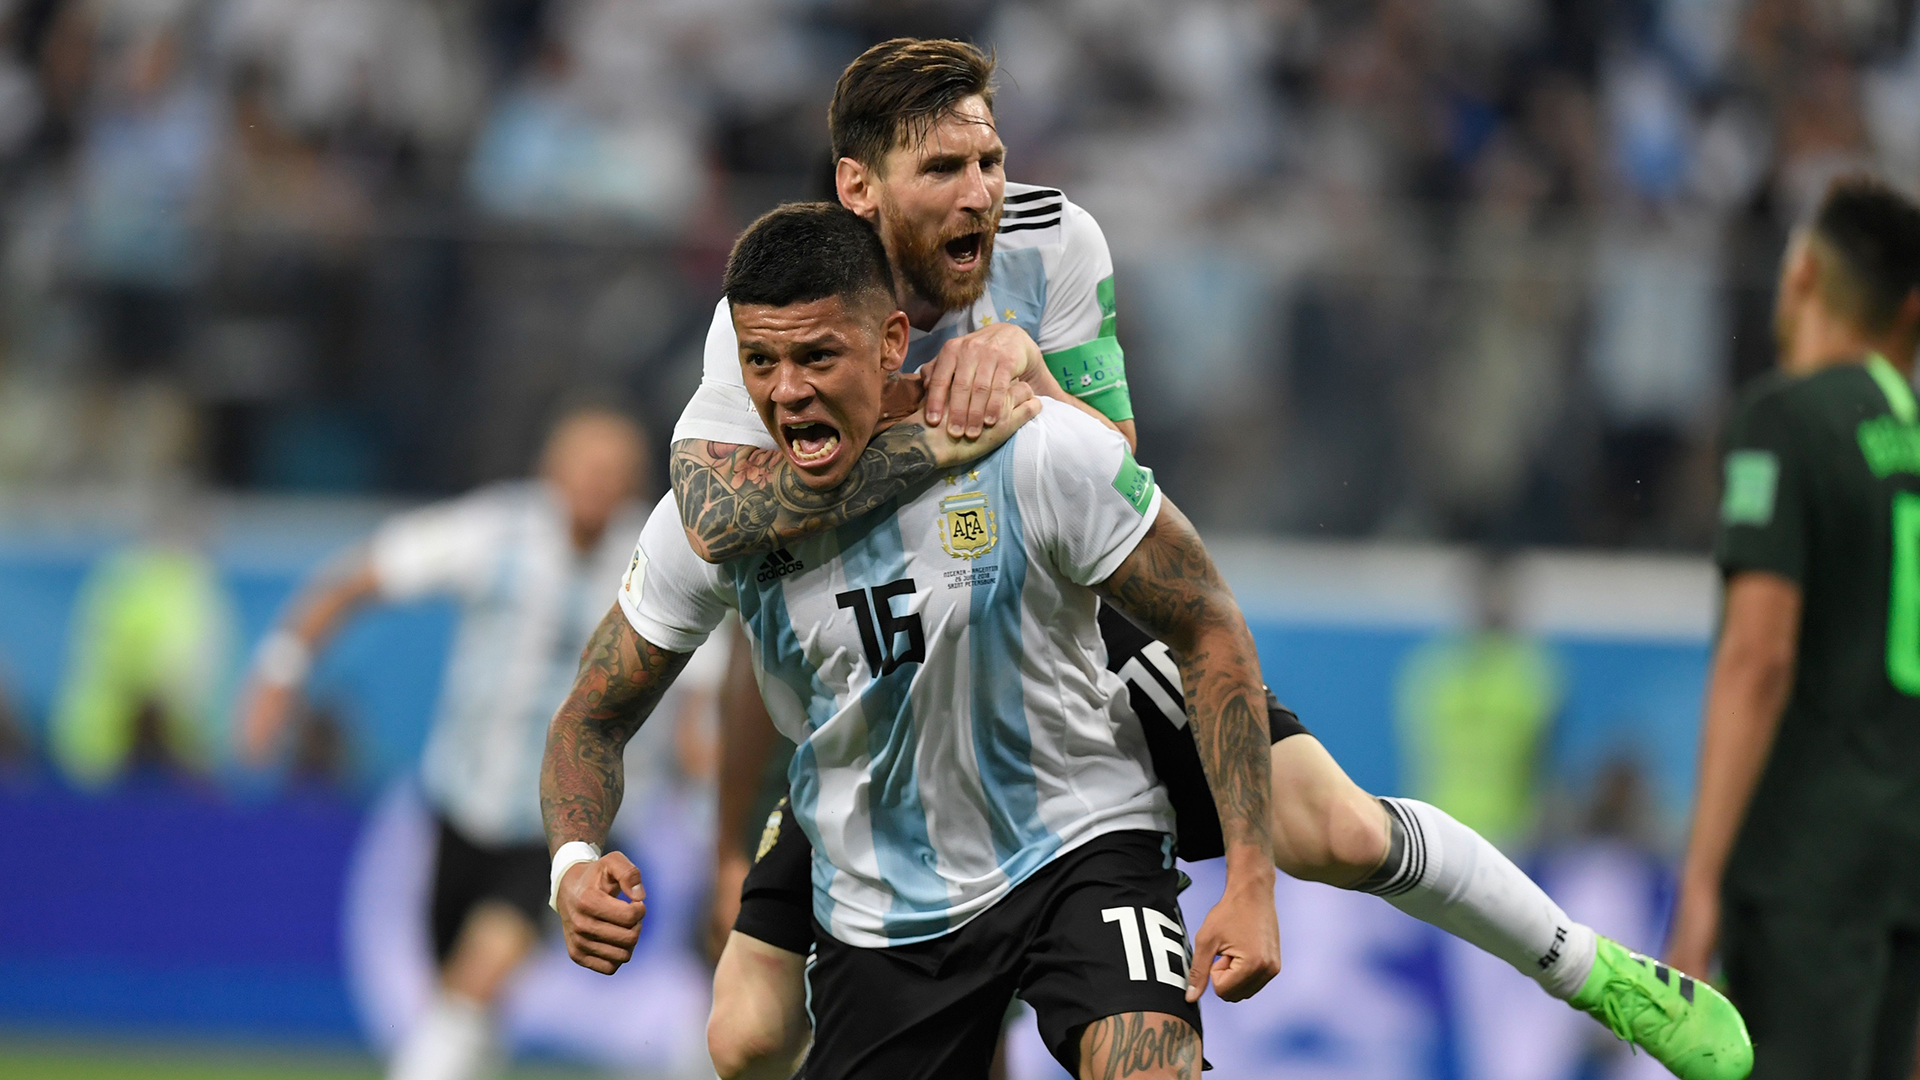 Argentina are more than just Lionel Messi - France boss Deschamps